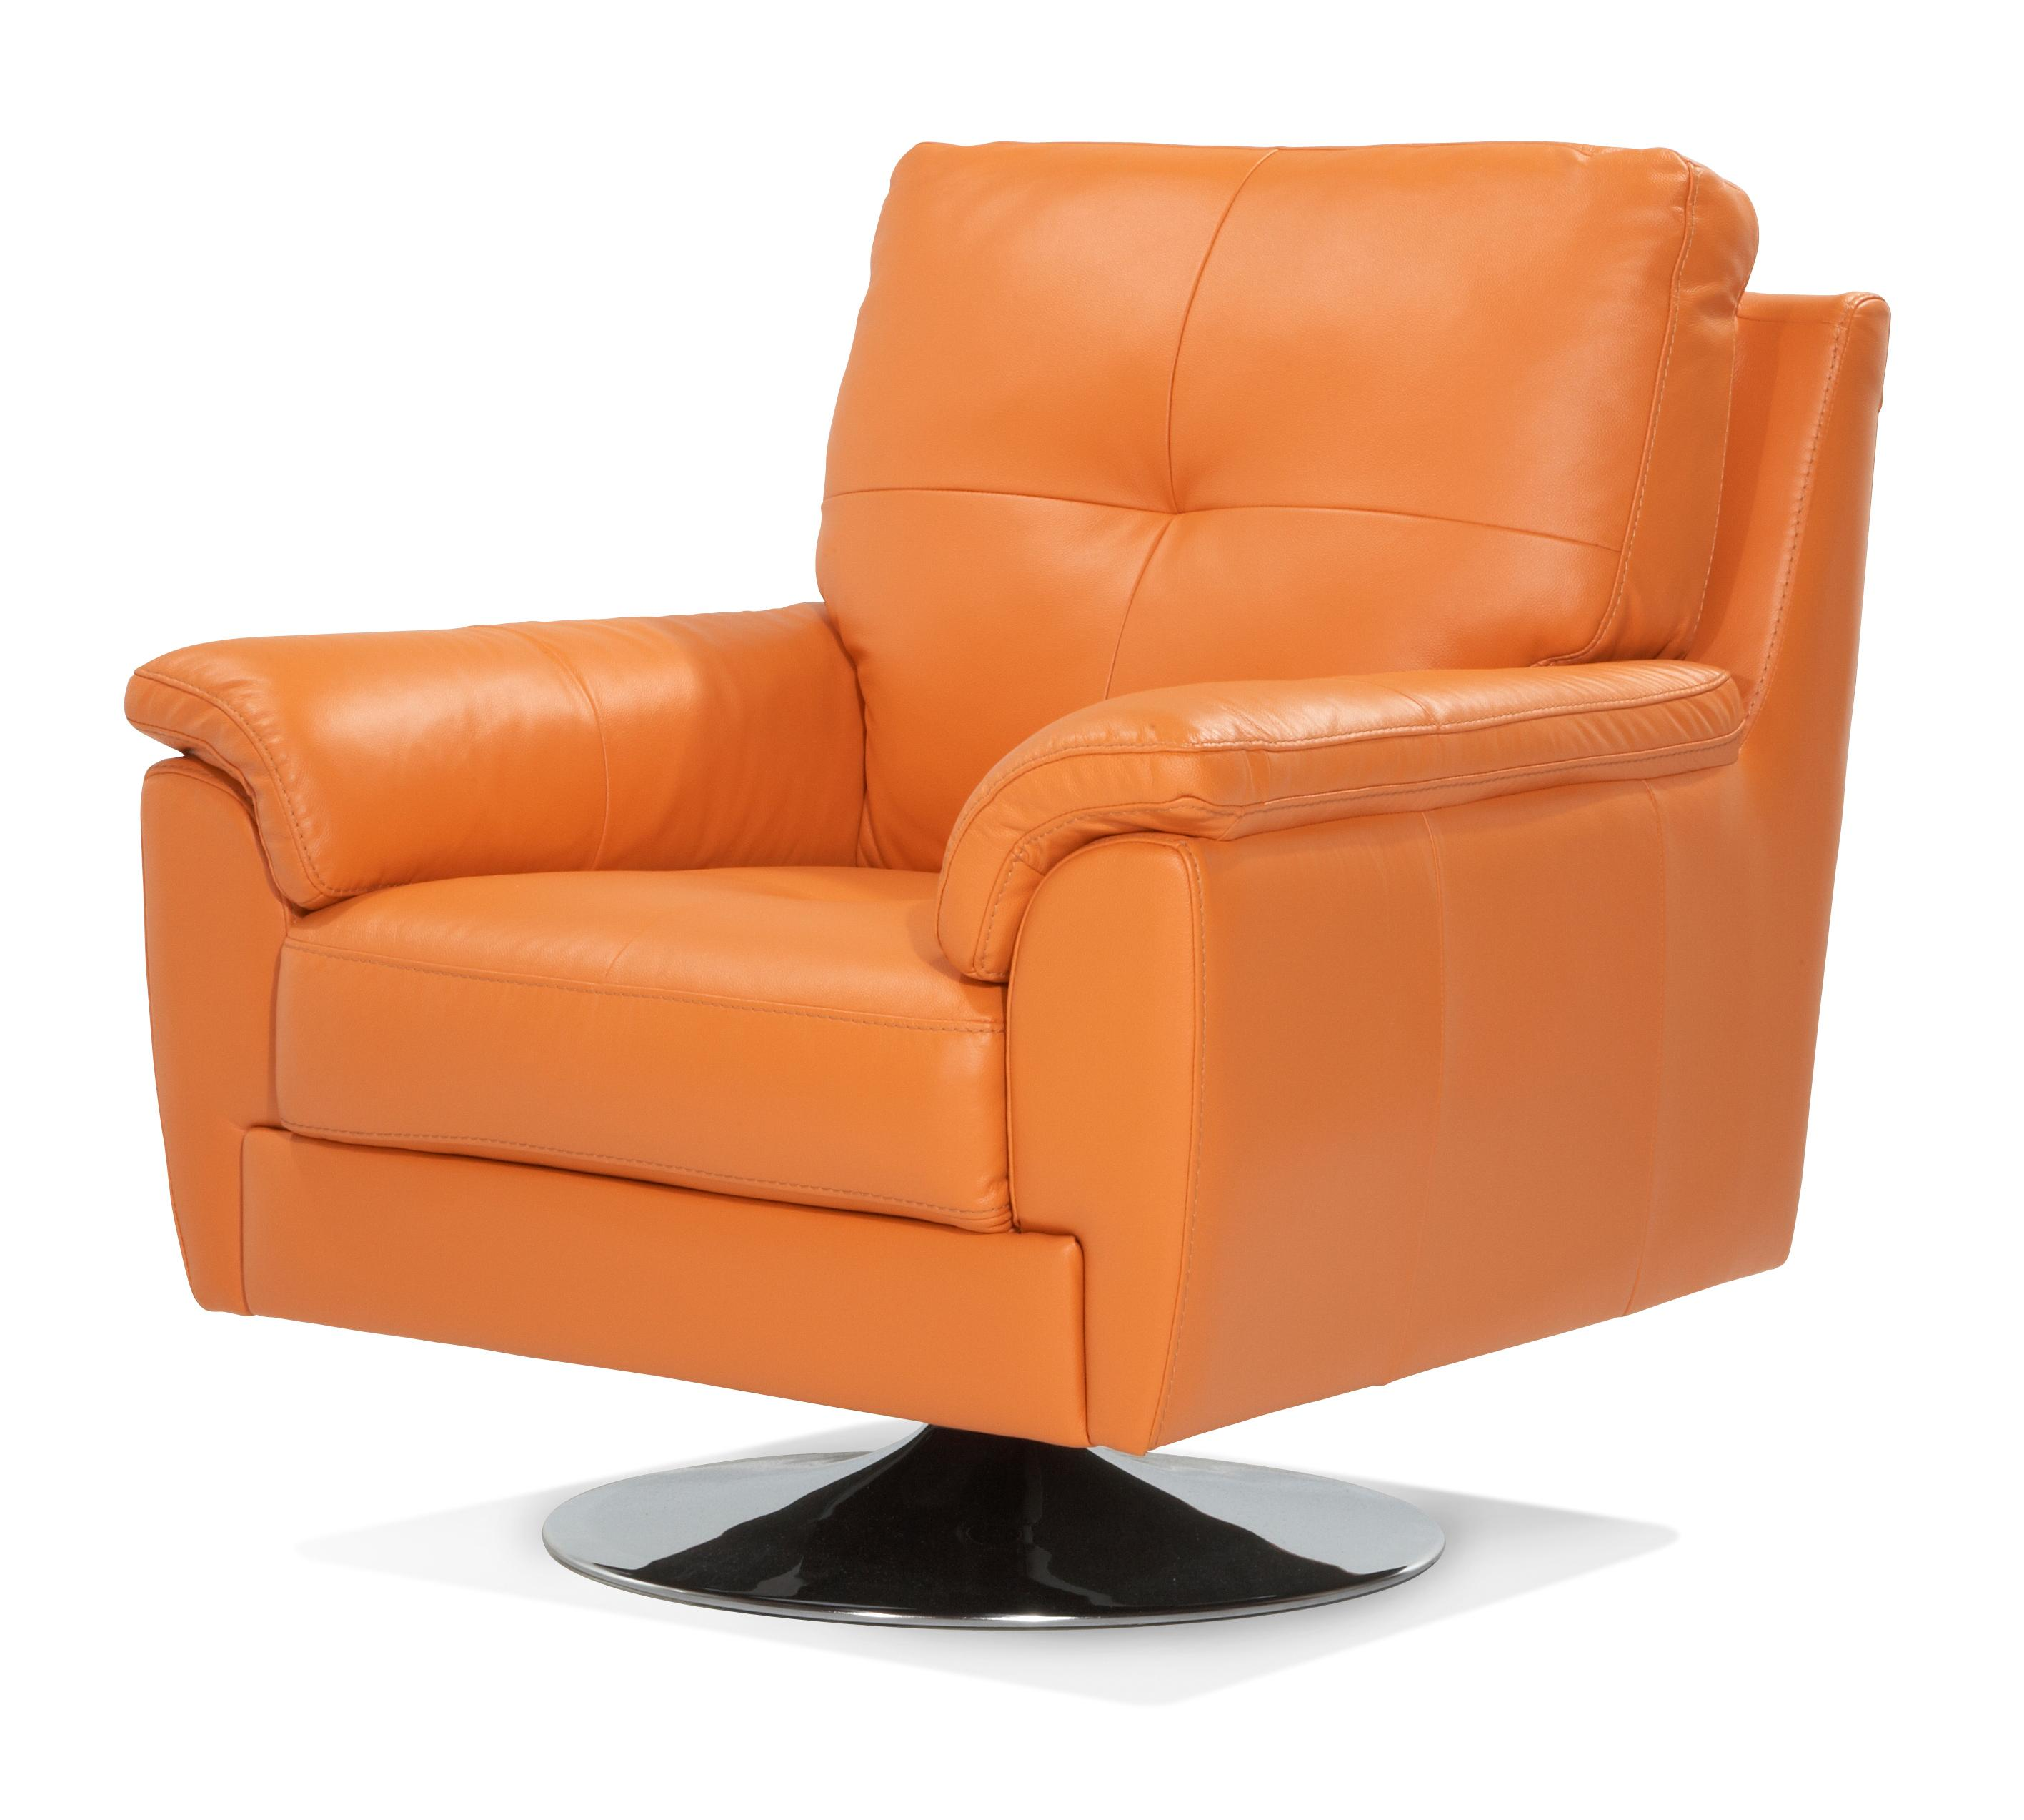 Orange Leather Chair Dfs Ainsley 100 Real Leather Orange Swivel Chair Ebay